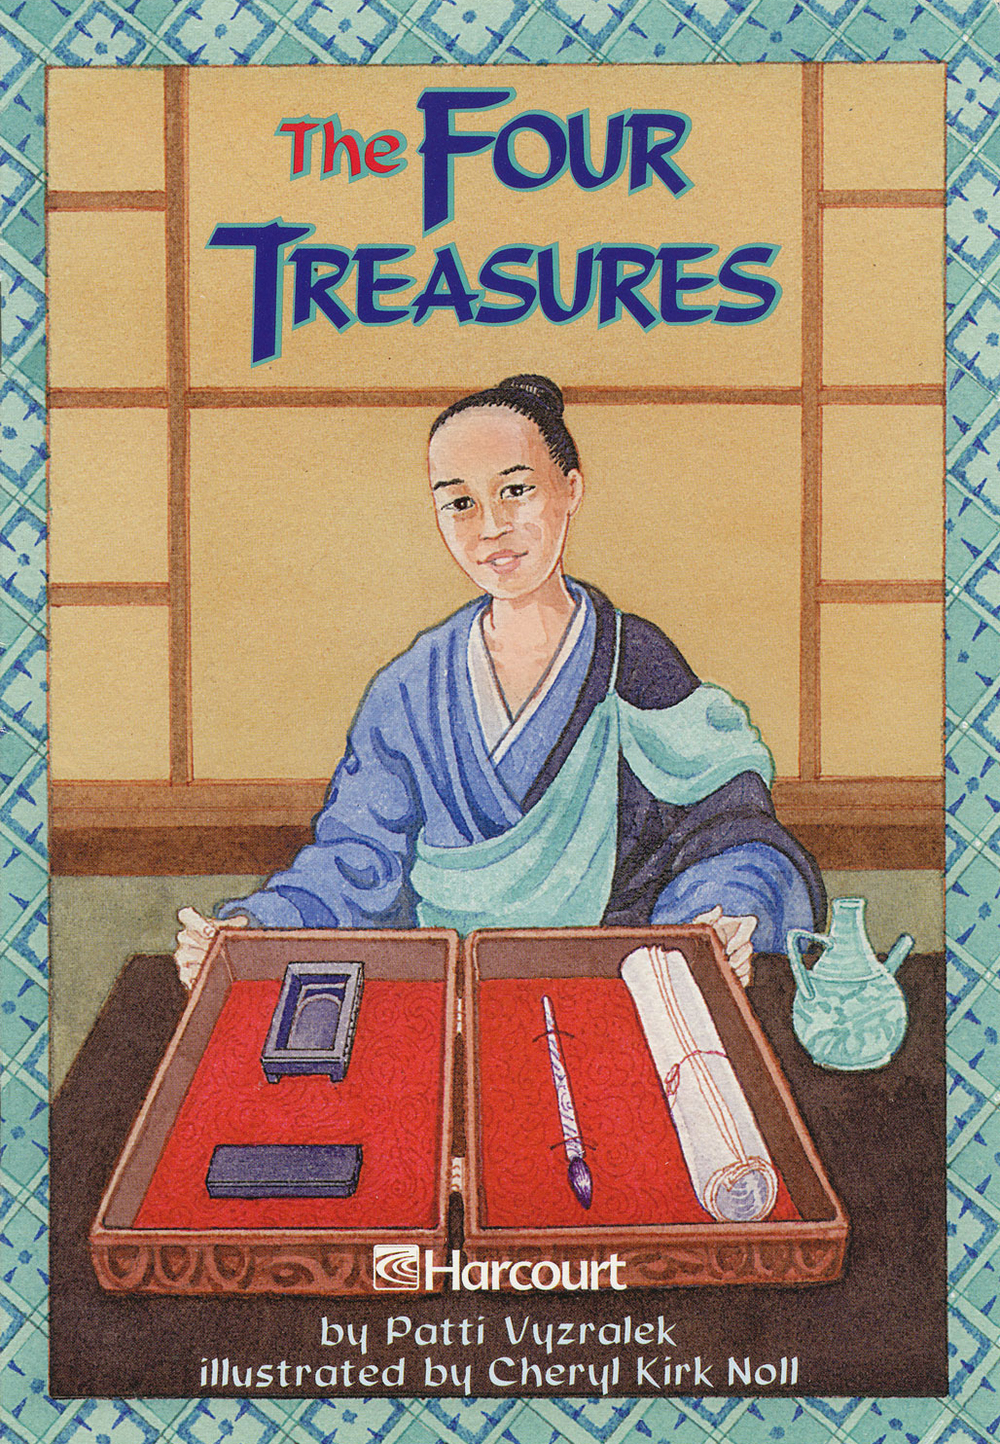 cover-Four-treasures.jpg